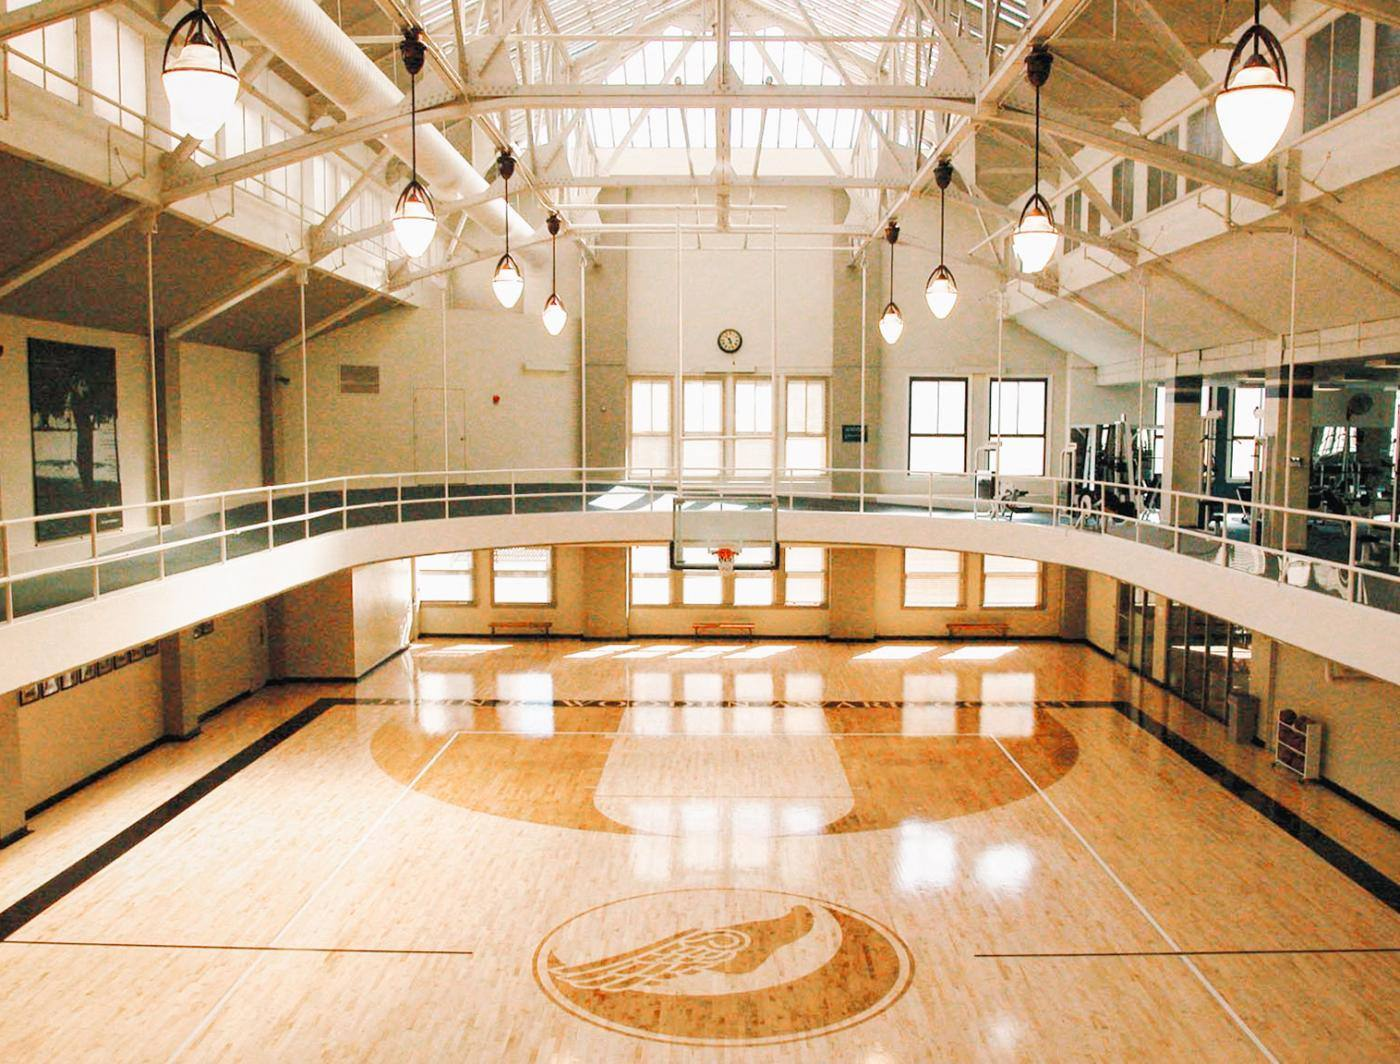 Basketball court at Los Angeles Athletic Club in DTLA